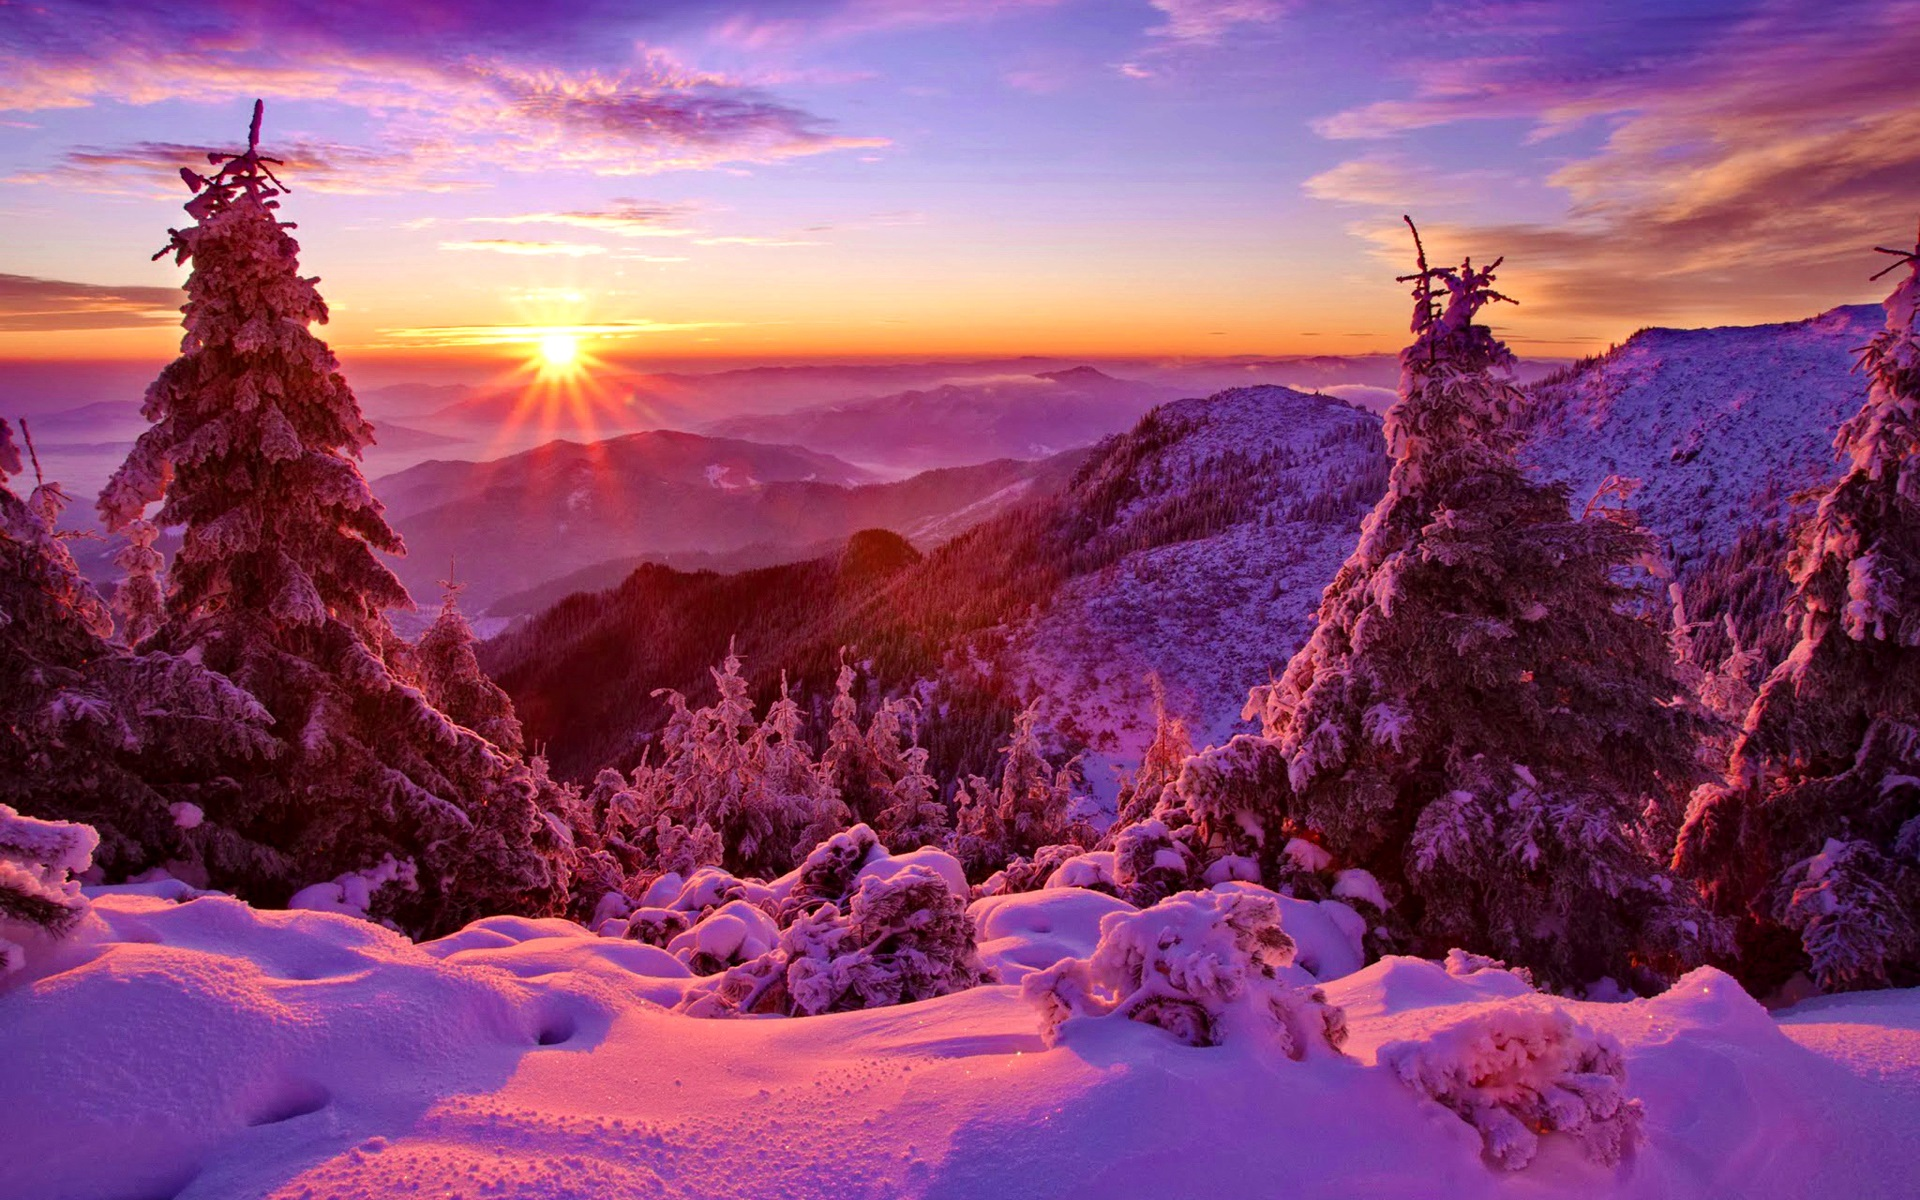 Wallpaper Winter Sky Sunset Mountains Forest Trees